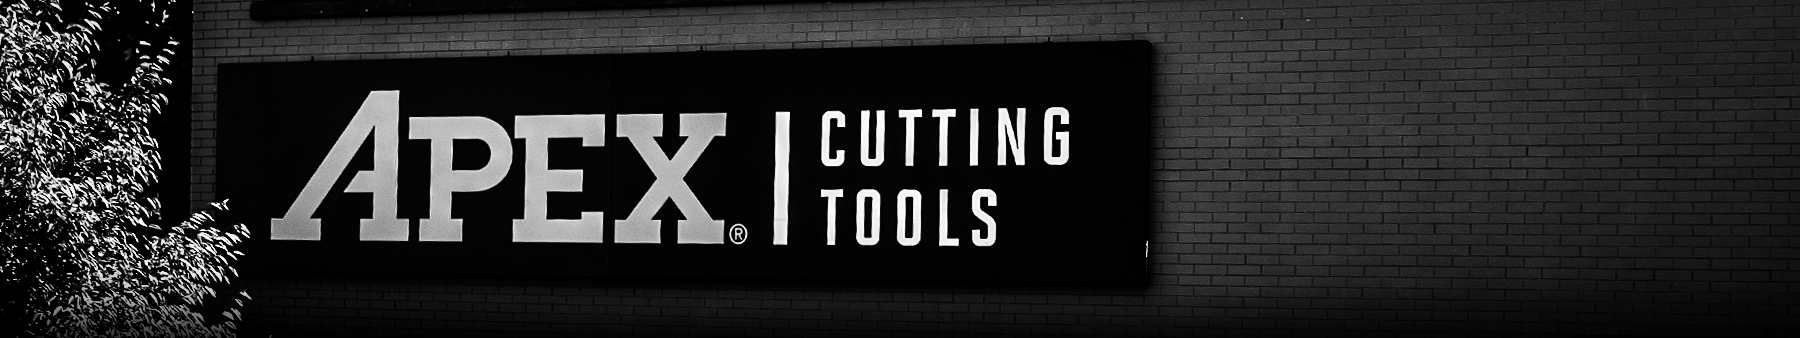 Contact Us, Apex Cutting Tools, Tool Cutters in Niagara